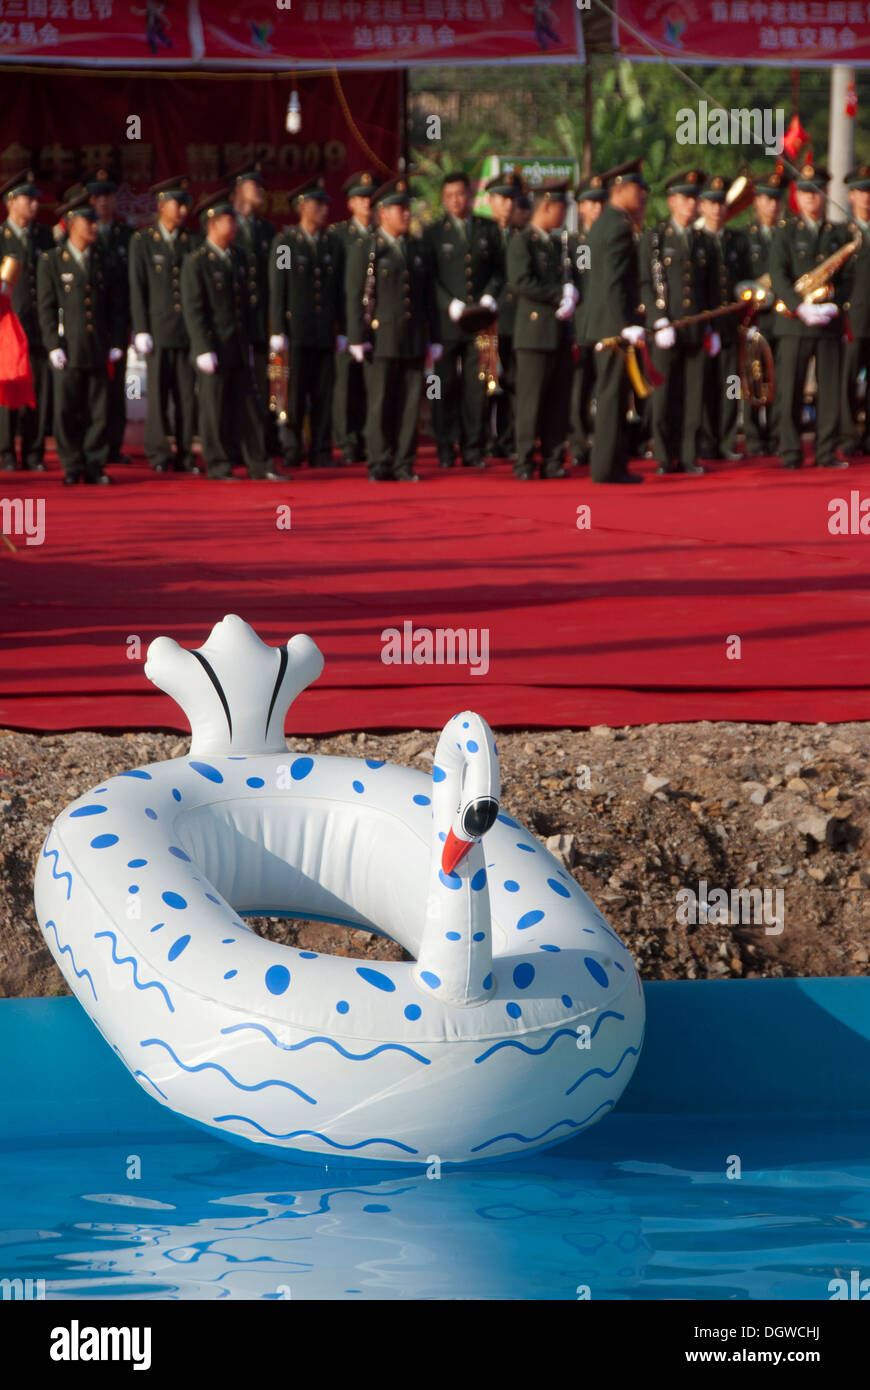 Military Band of the Army behind a swan-shaped inflatable boat, Festival in Jiangcheng, Pu'er City, Yunnan Province - Stock Image